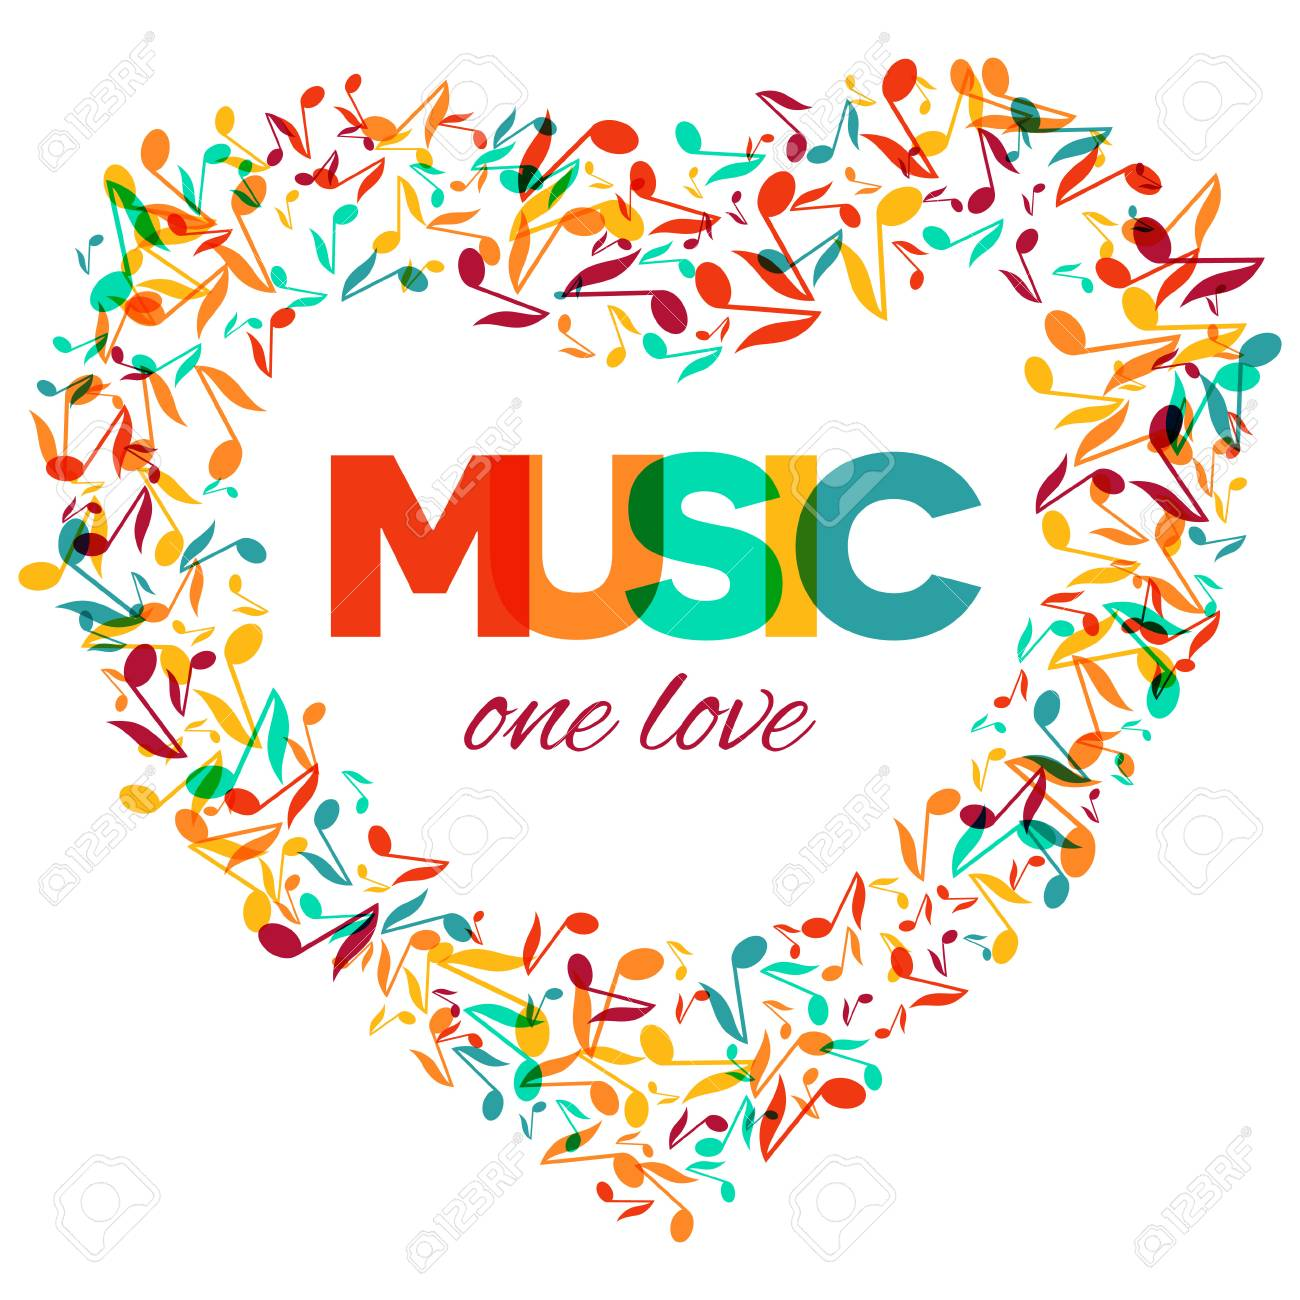 Colorful Music Event Notes Background Random Colored Music Festival